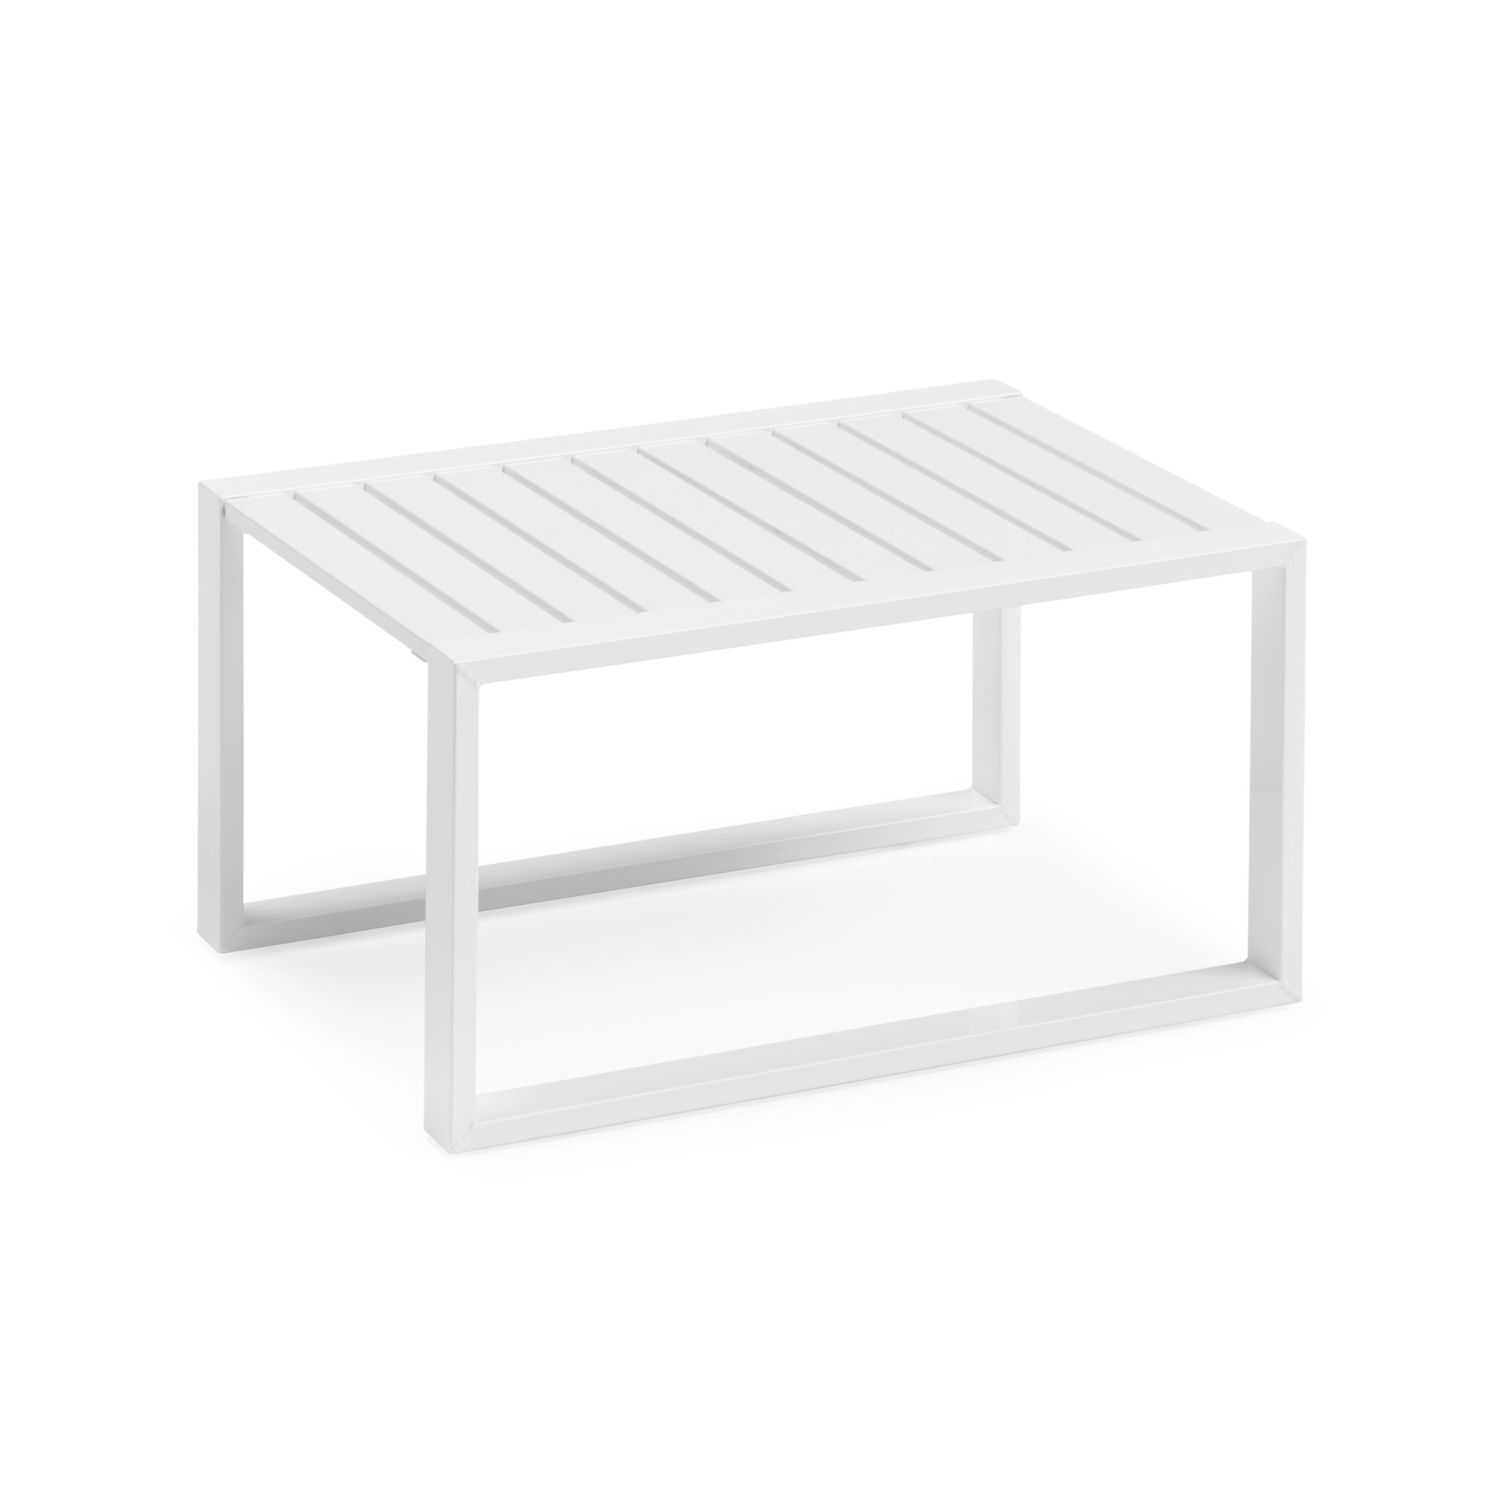 Table basse blanche carree id es de d coration for Table blanche carree